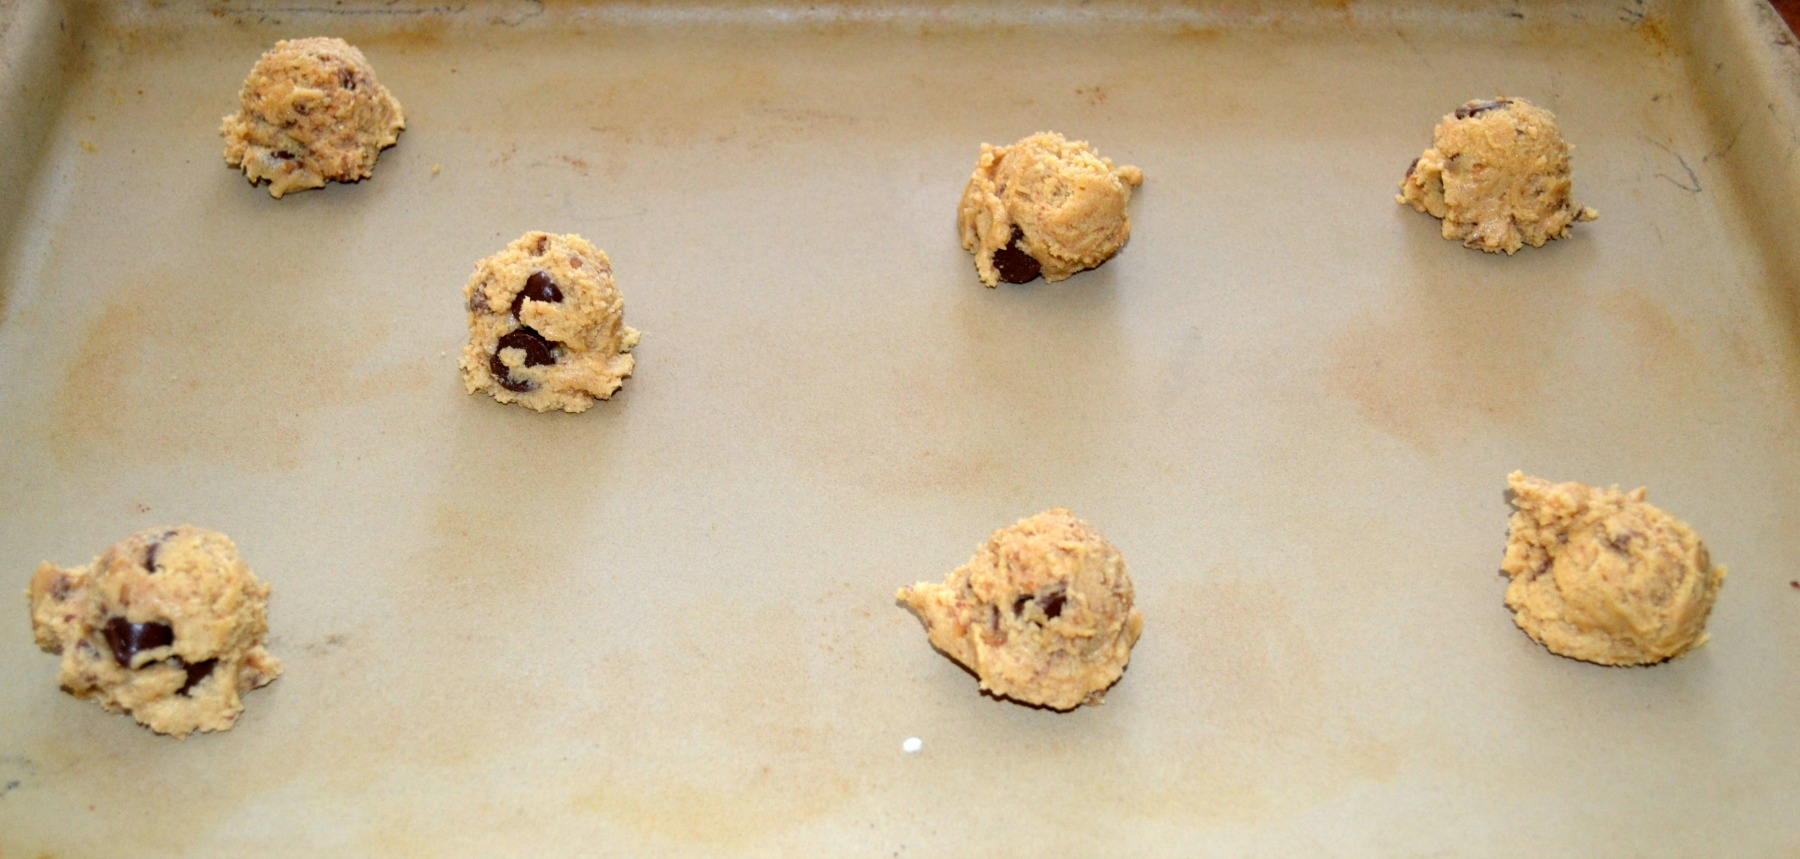 peanut butter, toffee bits, choc chips, fall baking